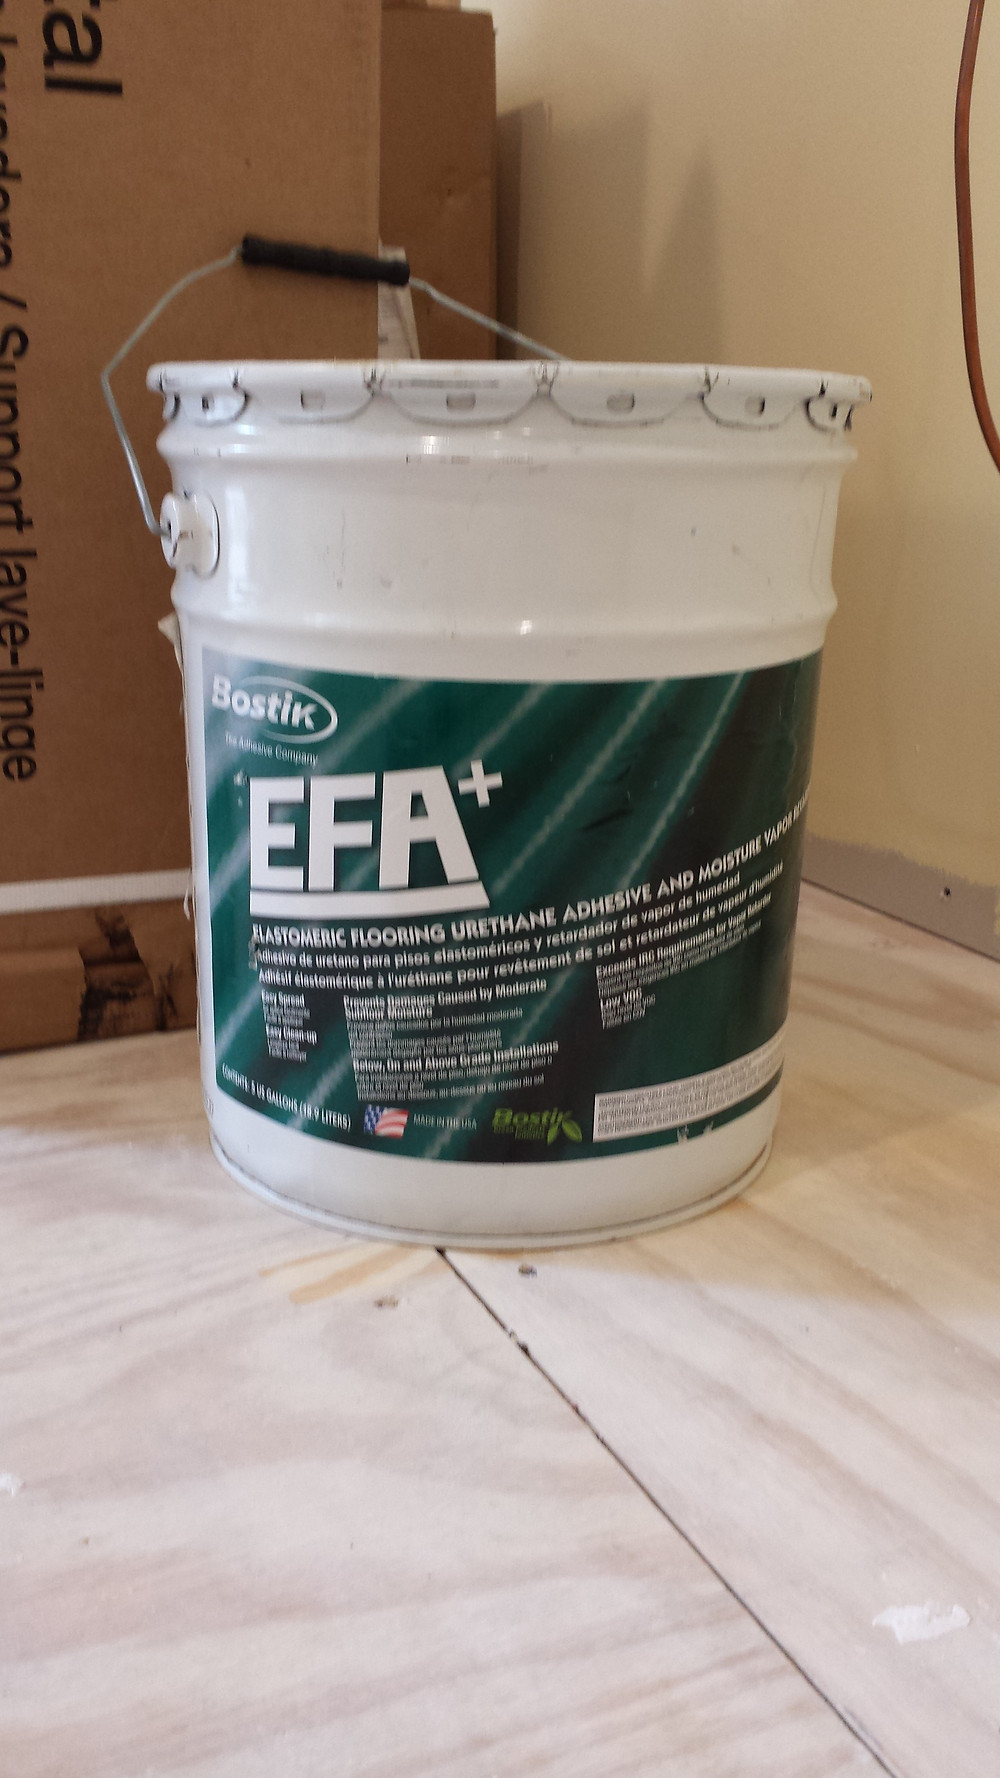 CLICK LINK FOR TECHNICAL DETAILS FOR Bostik EFA+ Elastometric Flooring Urethane Adhesive and Moisture Barrier was the glue we used to adhere the wood tiles to the sub-floor.  Copyright 2015 Marla Baxter Sanderson - SockOnARooster.com